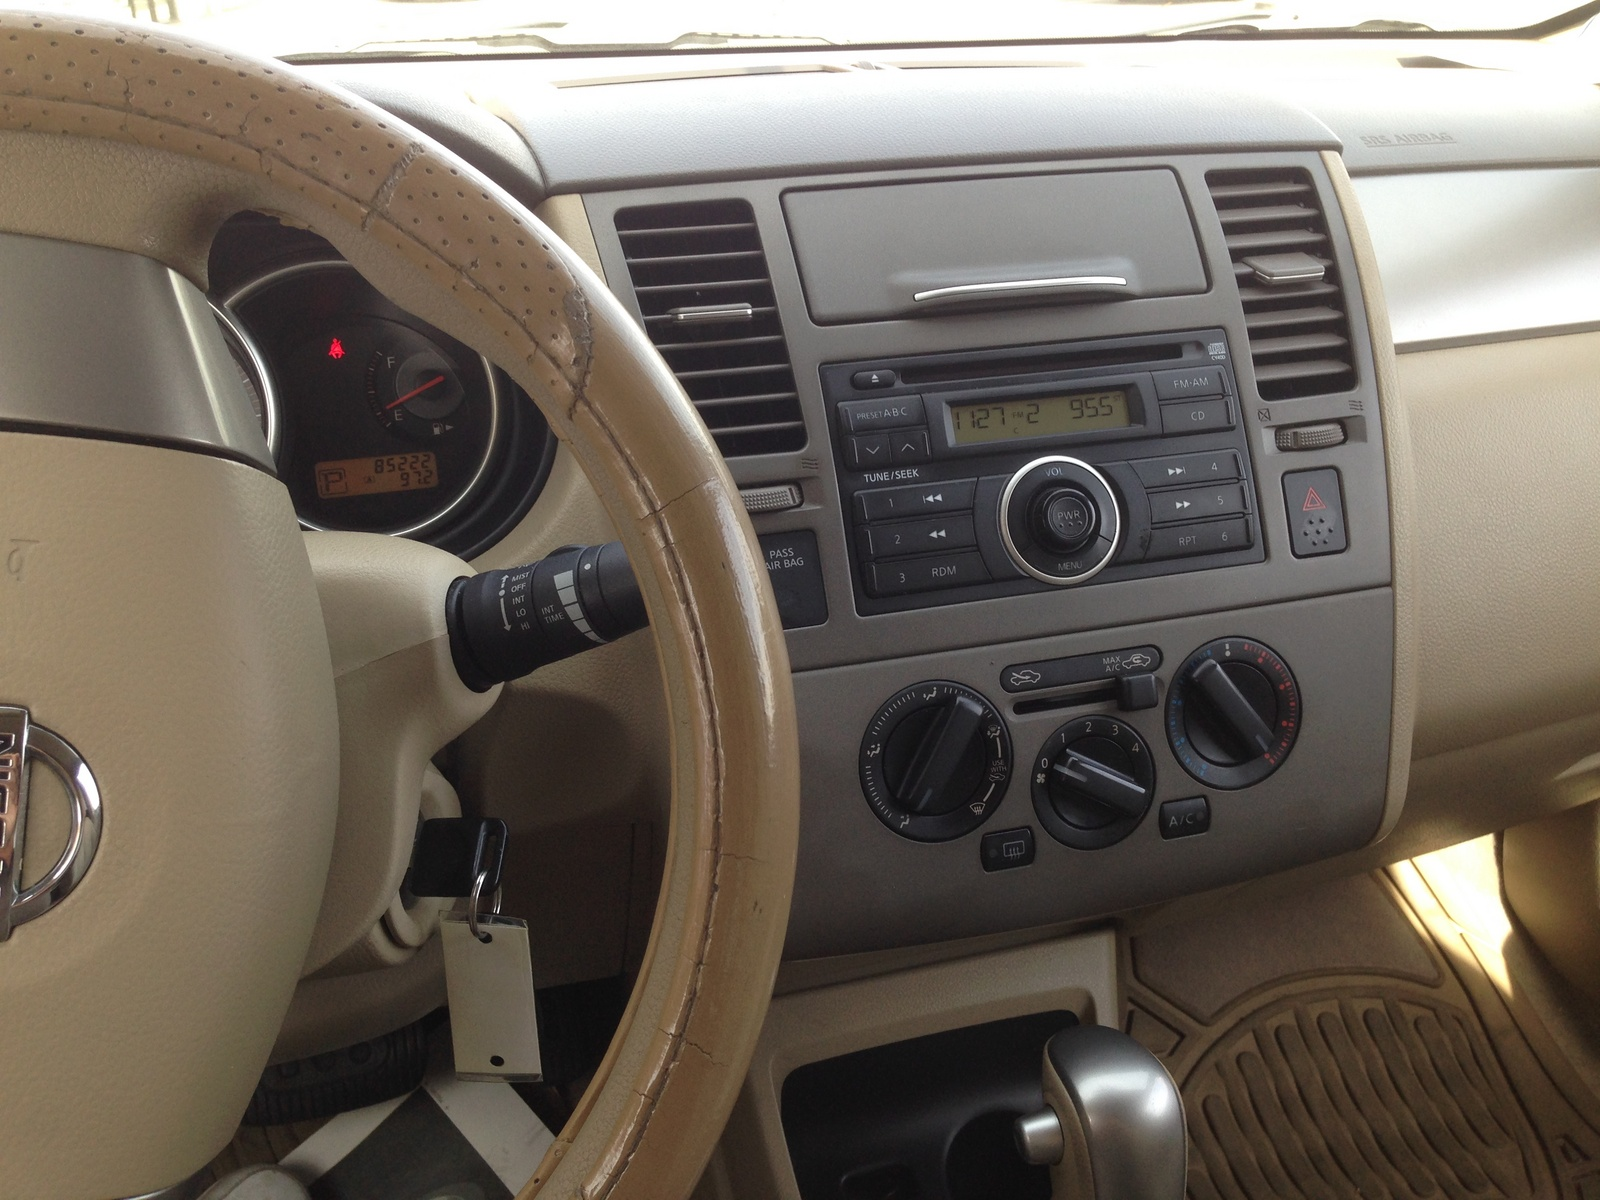 2007 nissan versa pictures c7339 page=14